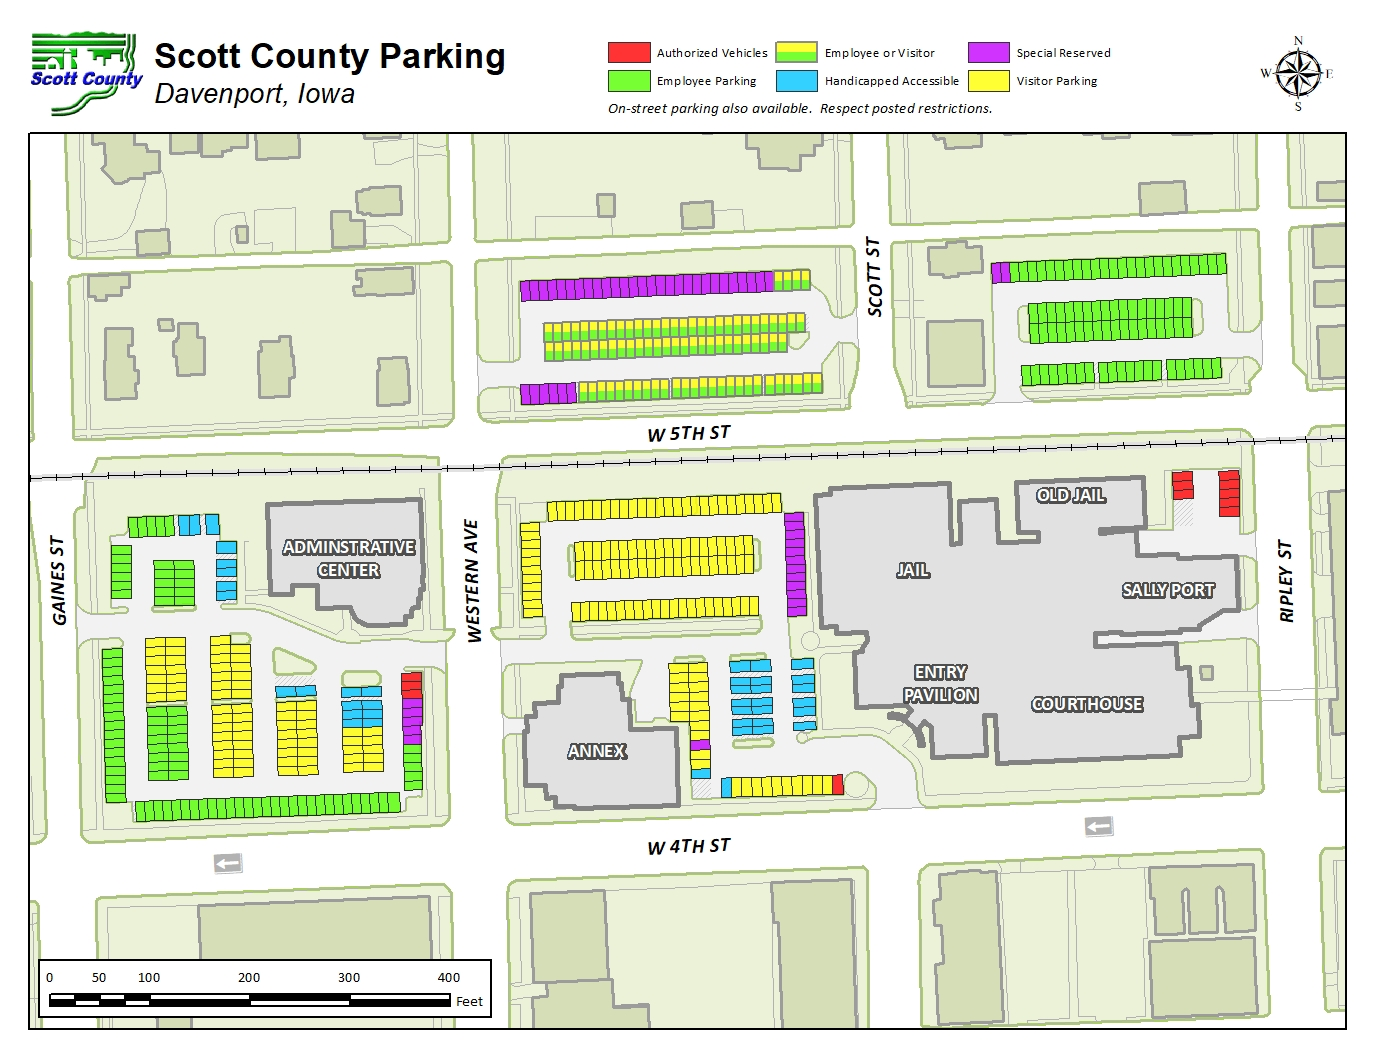 Scott County Iowa downtown campus parking map.